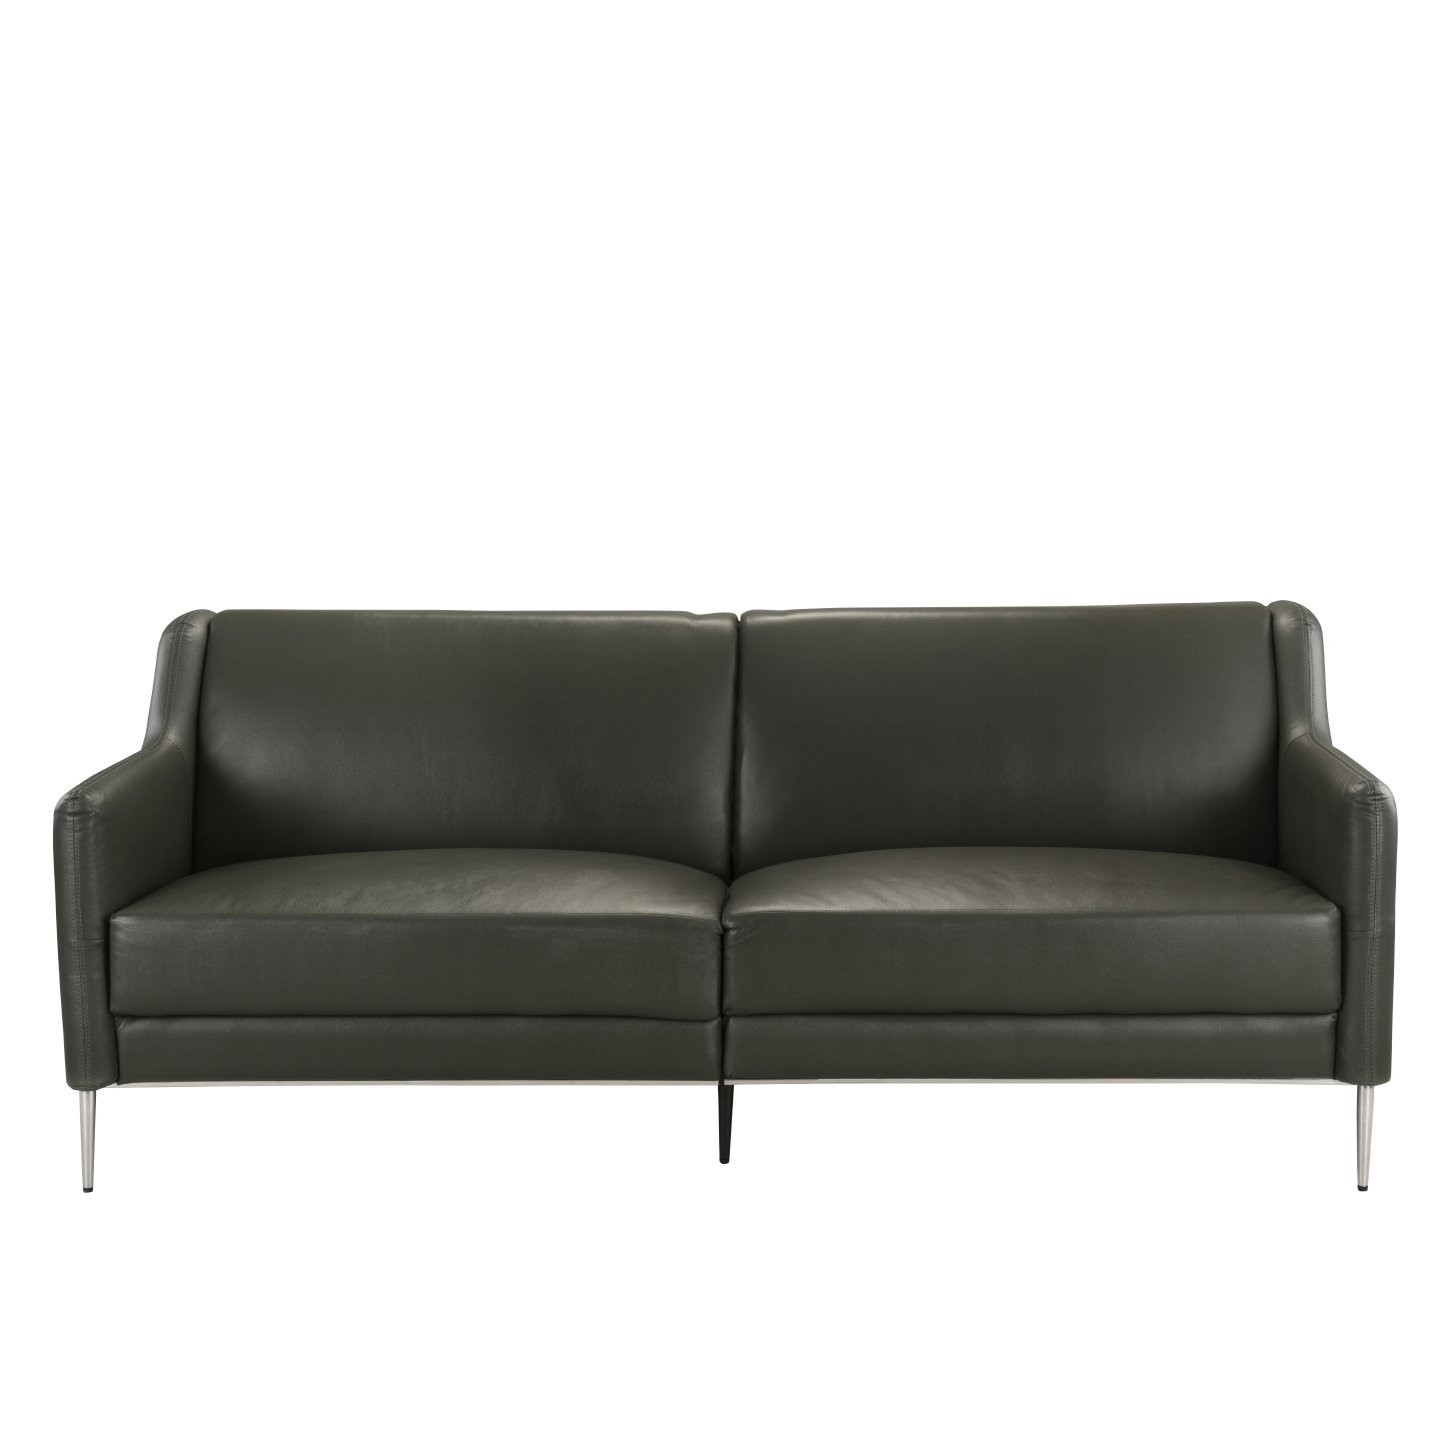 Mid Century Style Leather Sofa 77 1